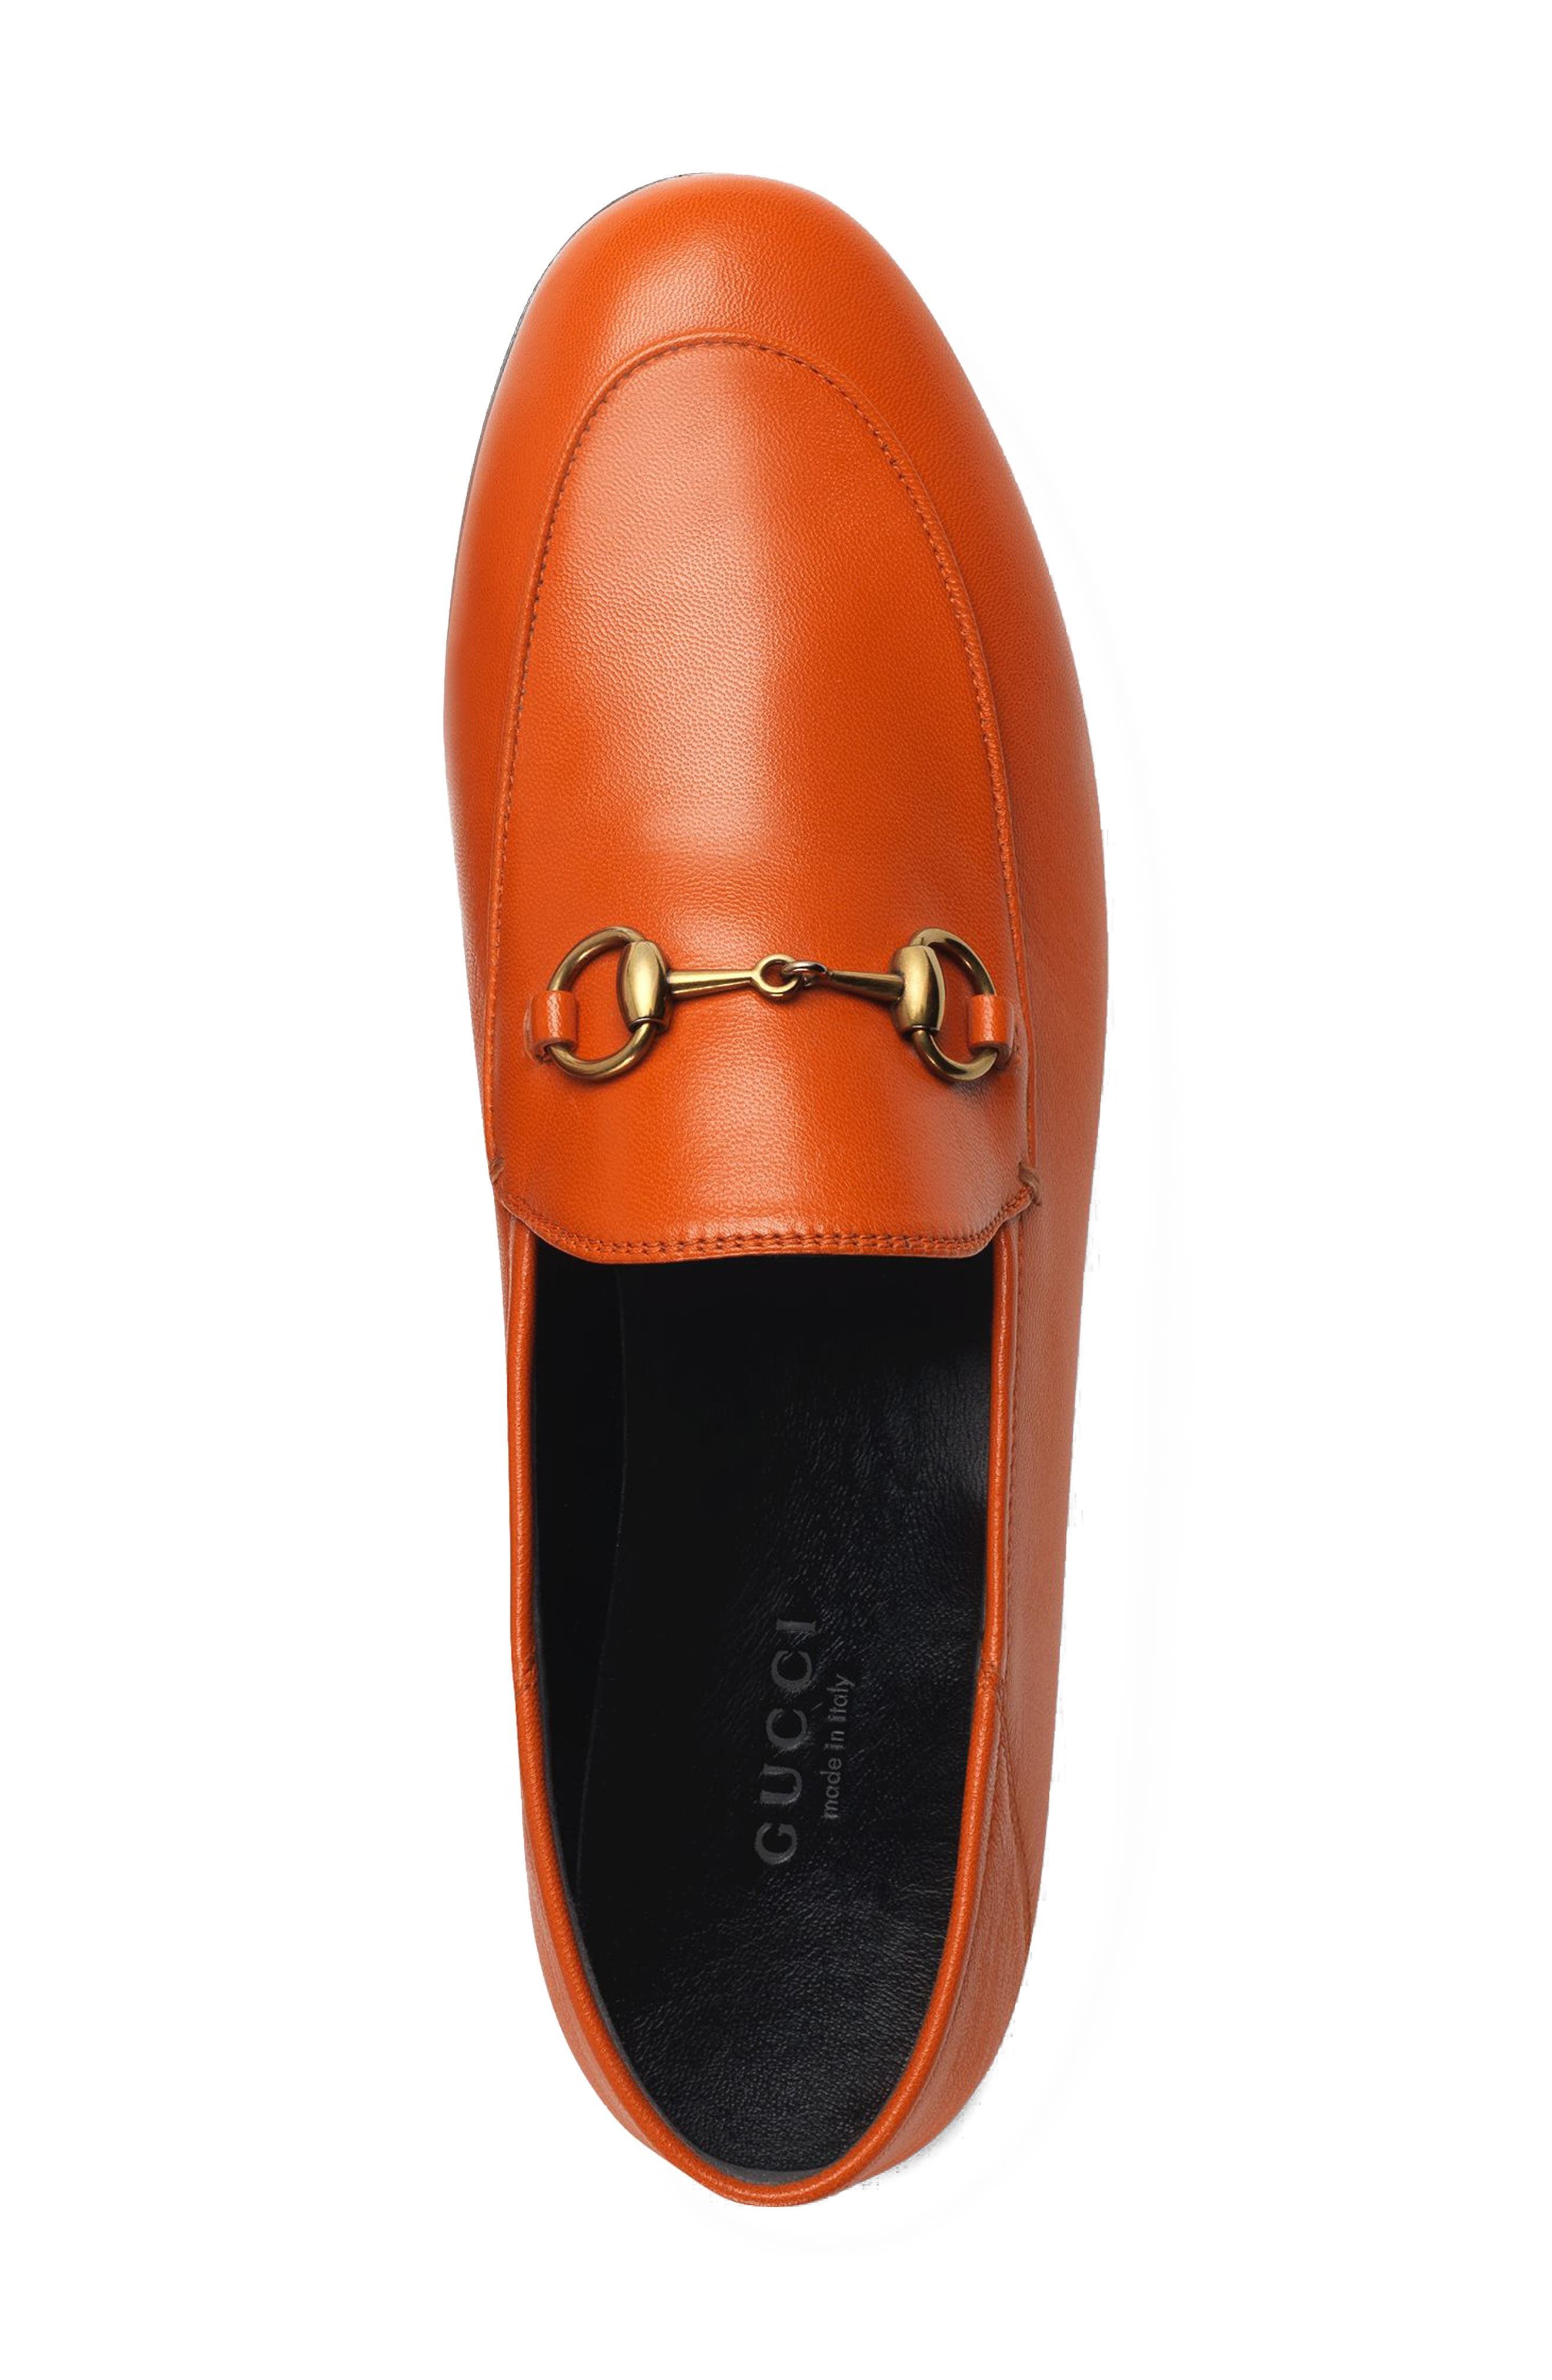 Brixton Convertible Loafer,                             Alternate thumbnail 3, color,                             DEEP ORANGE